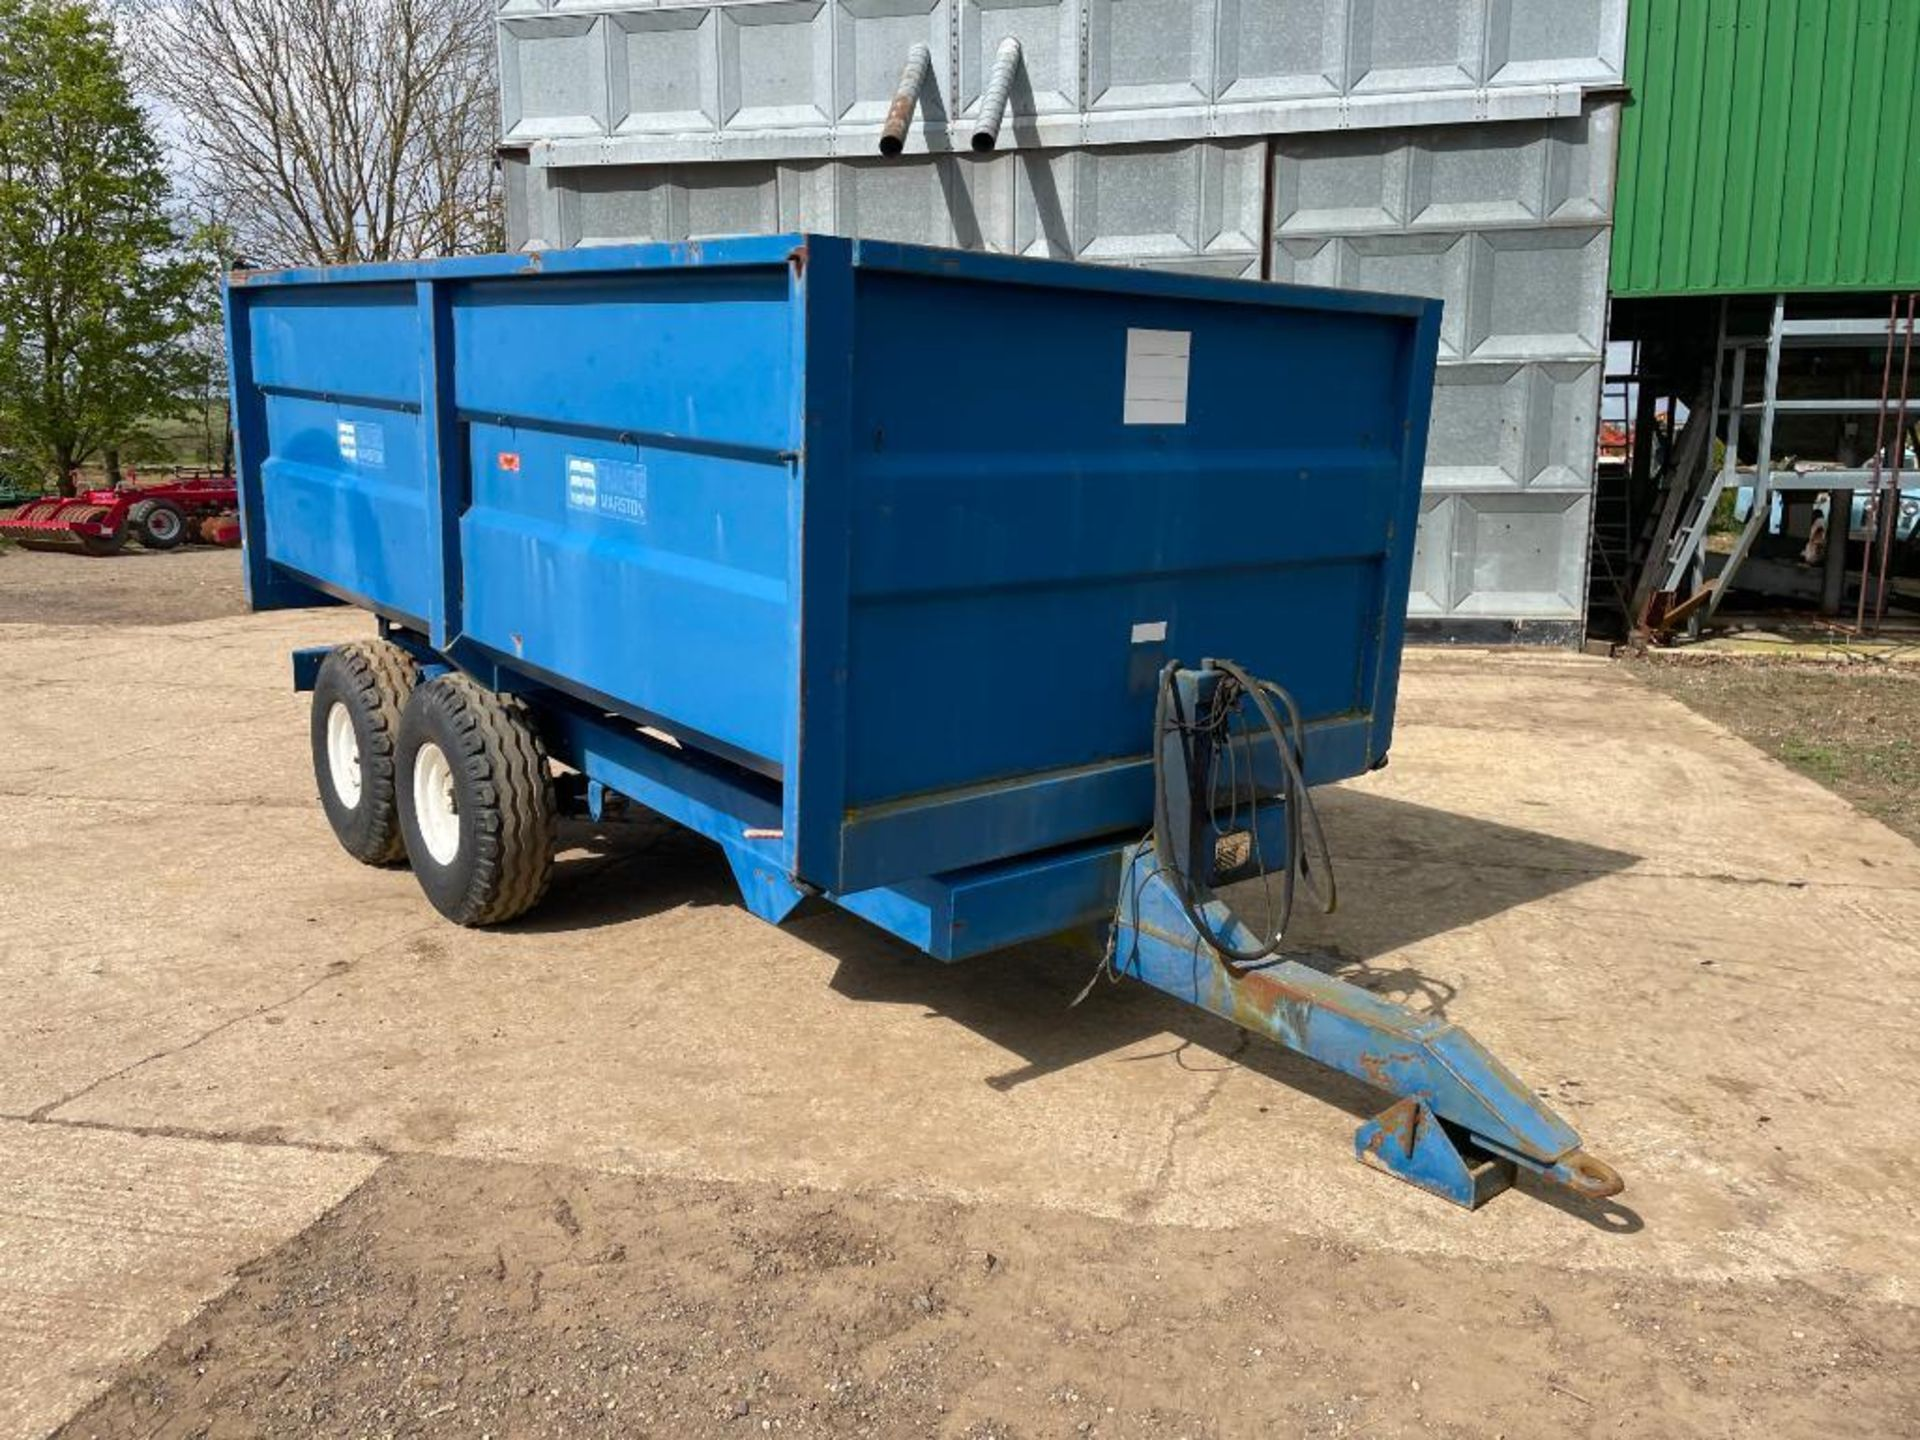 1986 AS Marston 8t twin axle grain trailer, manual tailgate and grain chute on 12.5/80-15.3 wheels a - Image 4 of 14